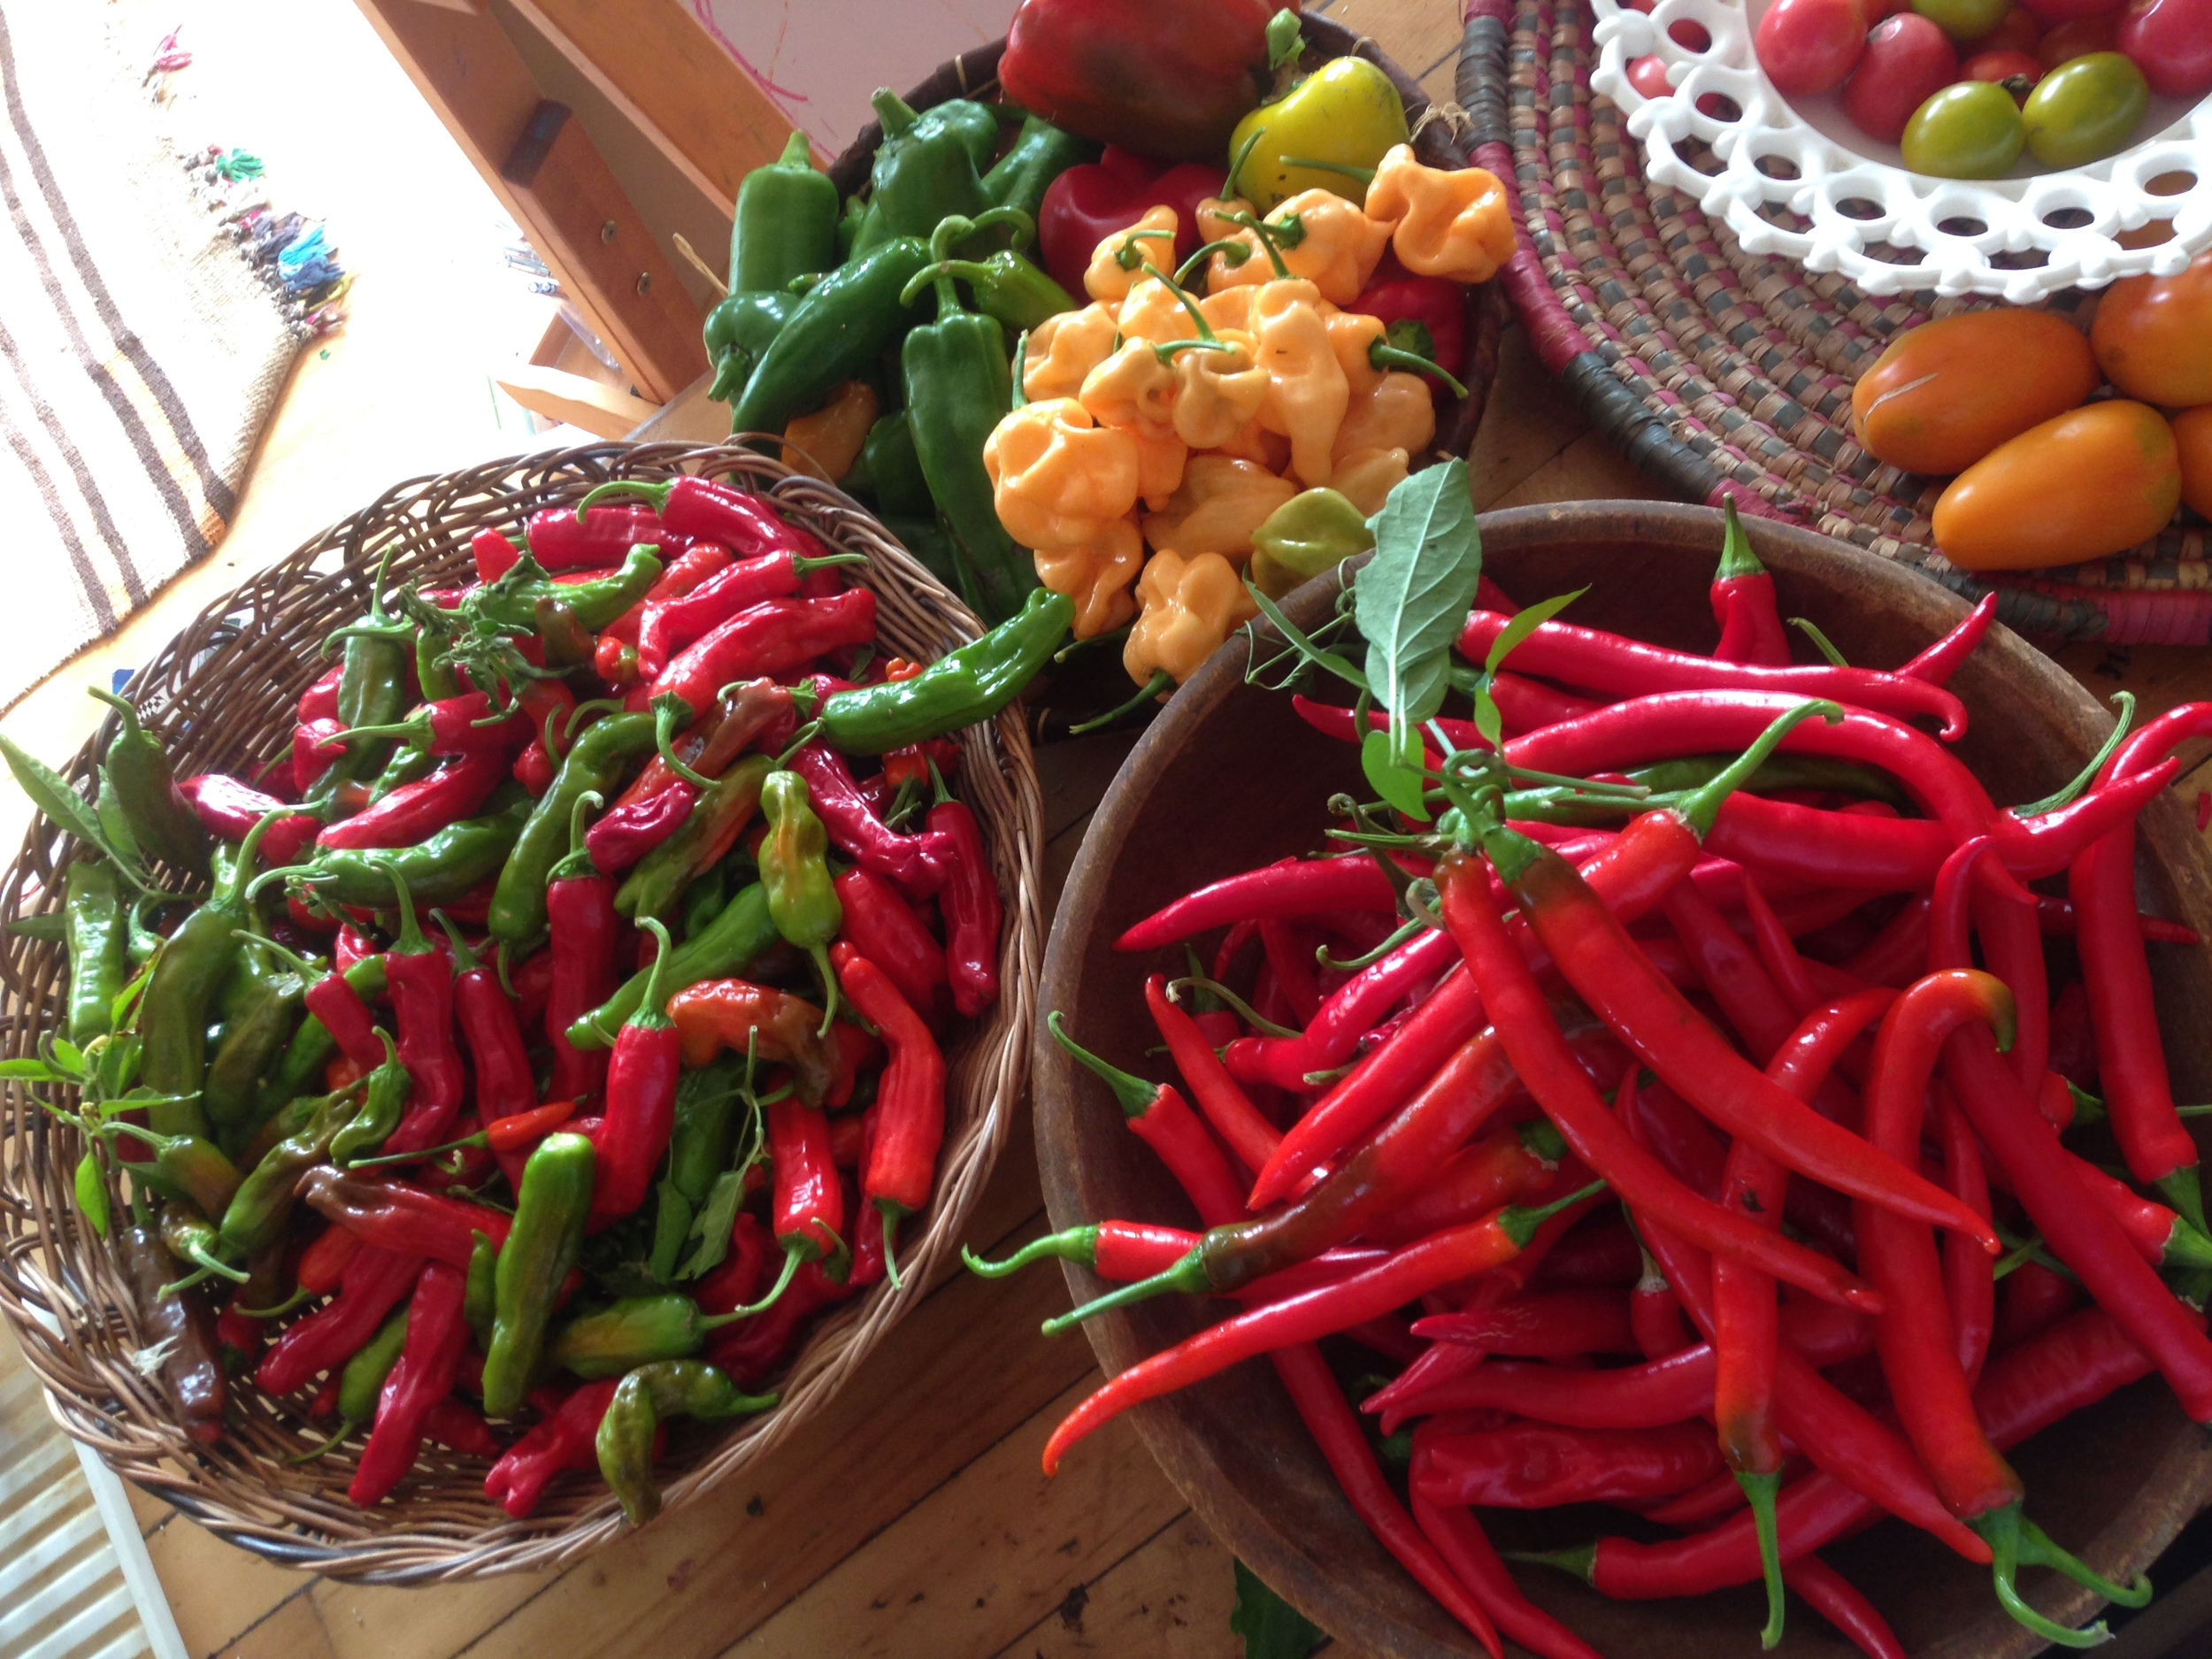 Shishito, Cayenne, Peach Habanero, Anaheim, and bell peppers for relish